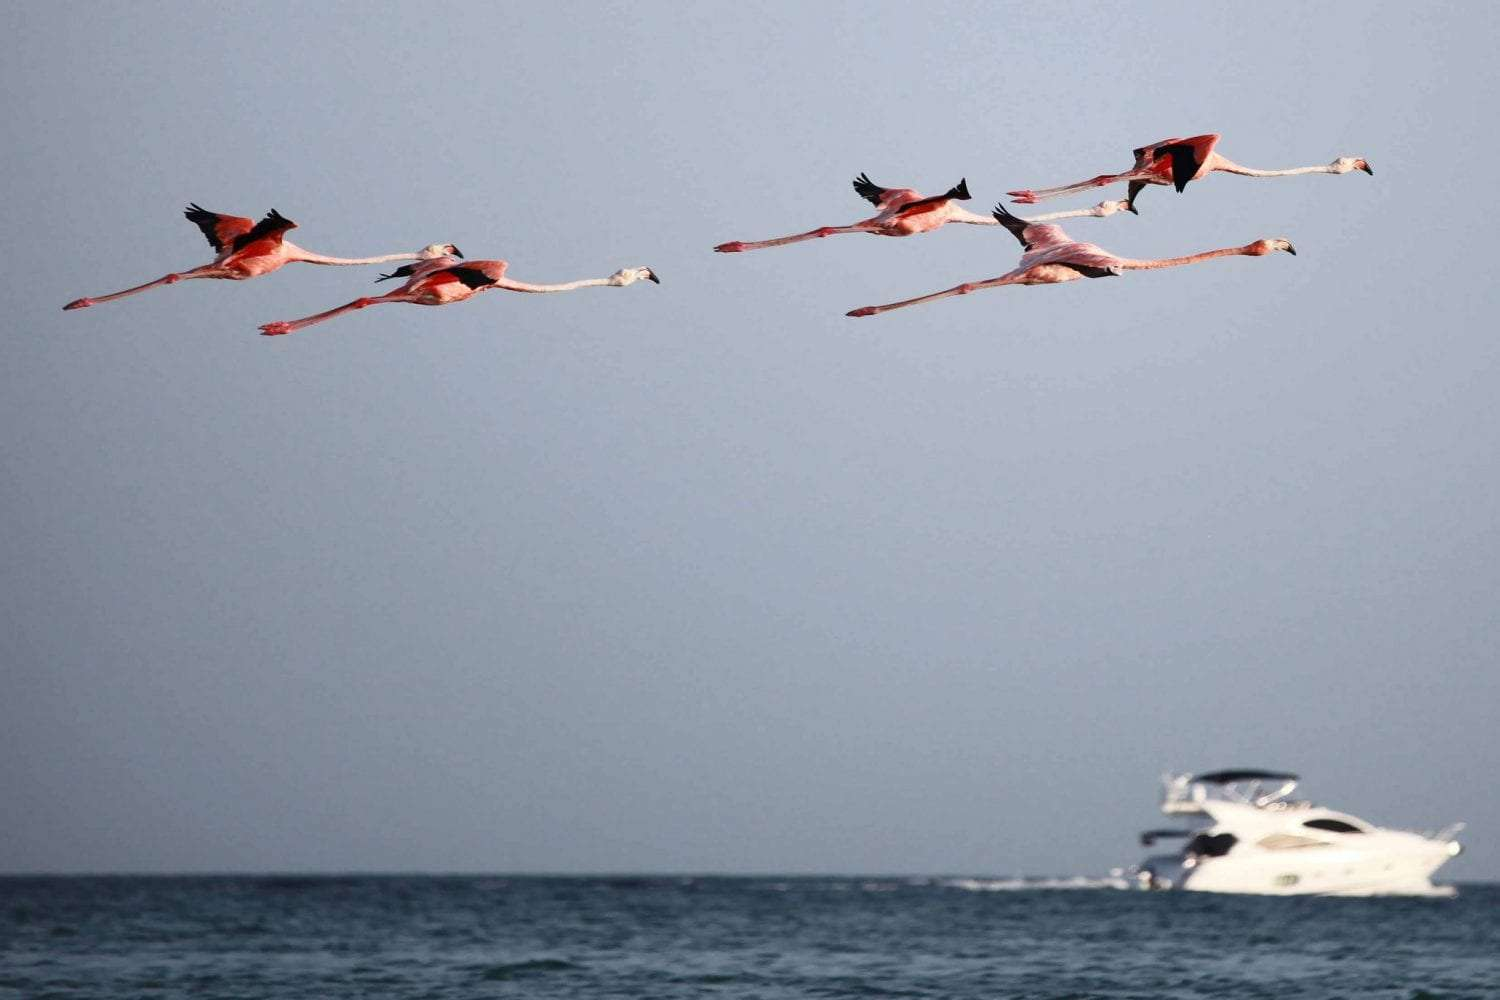 five flamingos flying above the sea, a yacht in the background